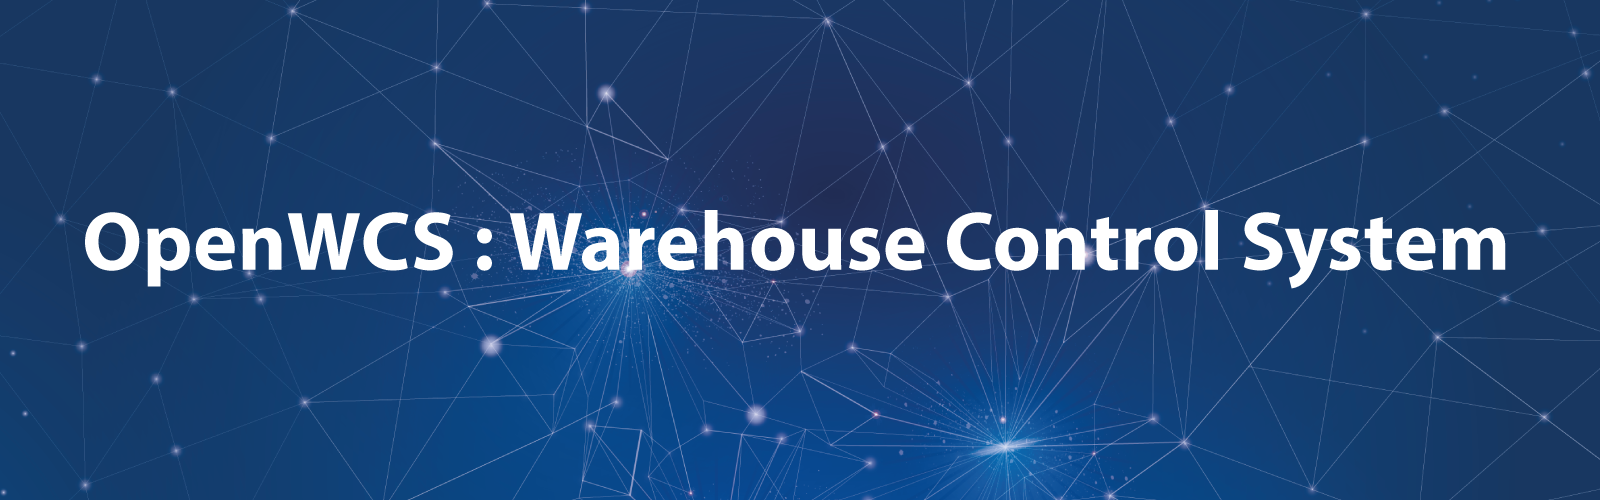 OpenWCS : Warehouse Control System